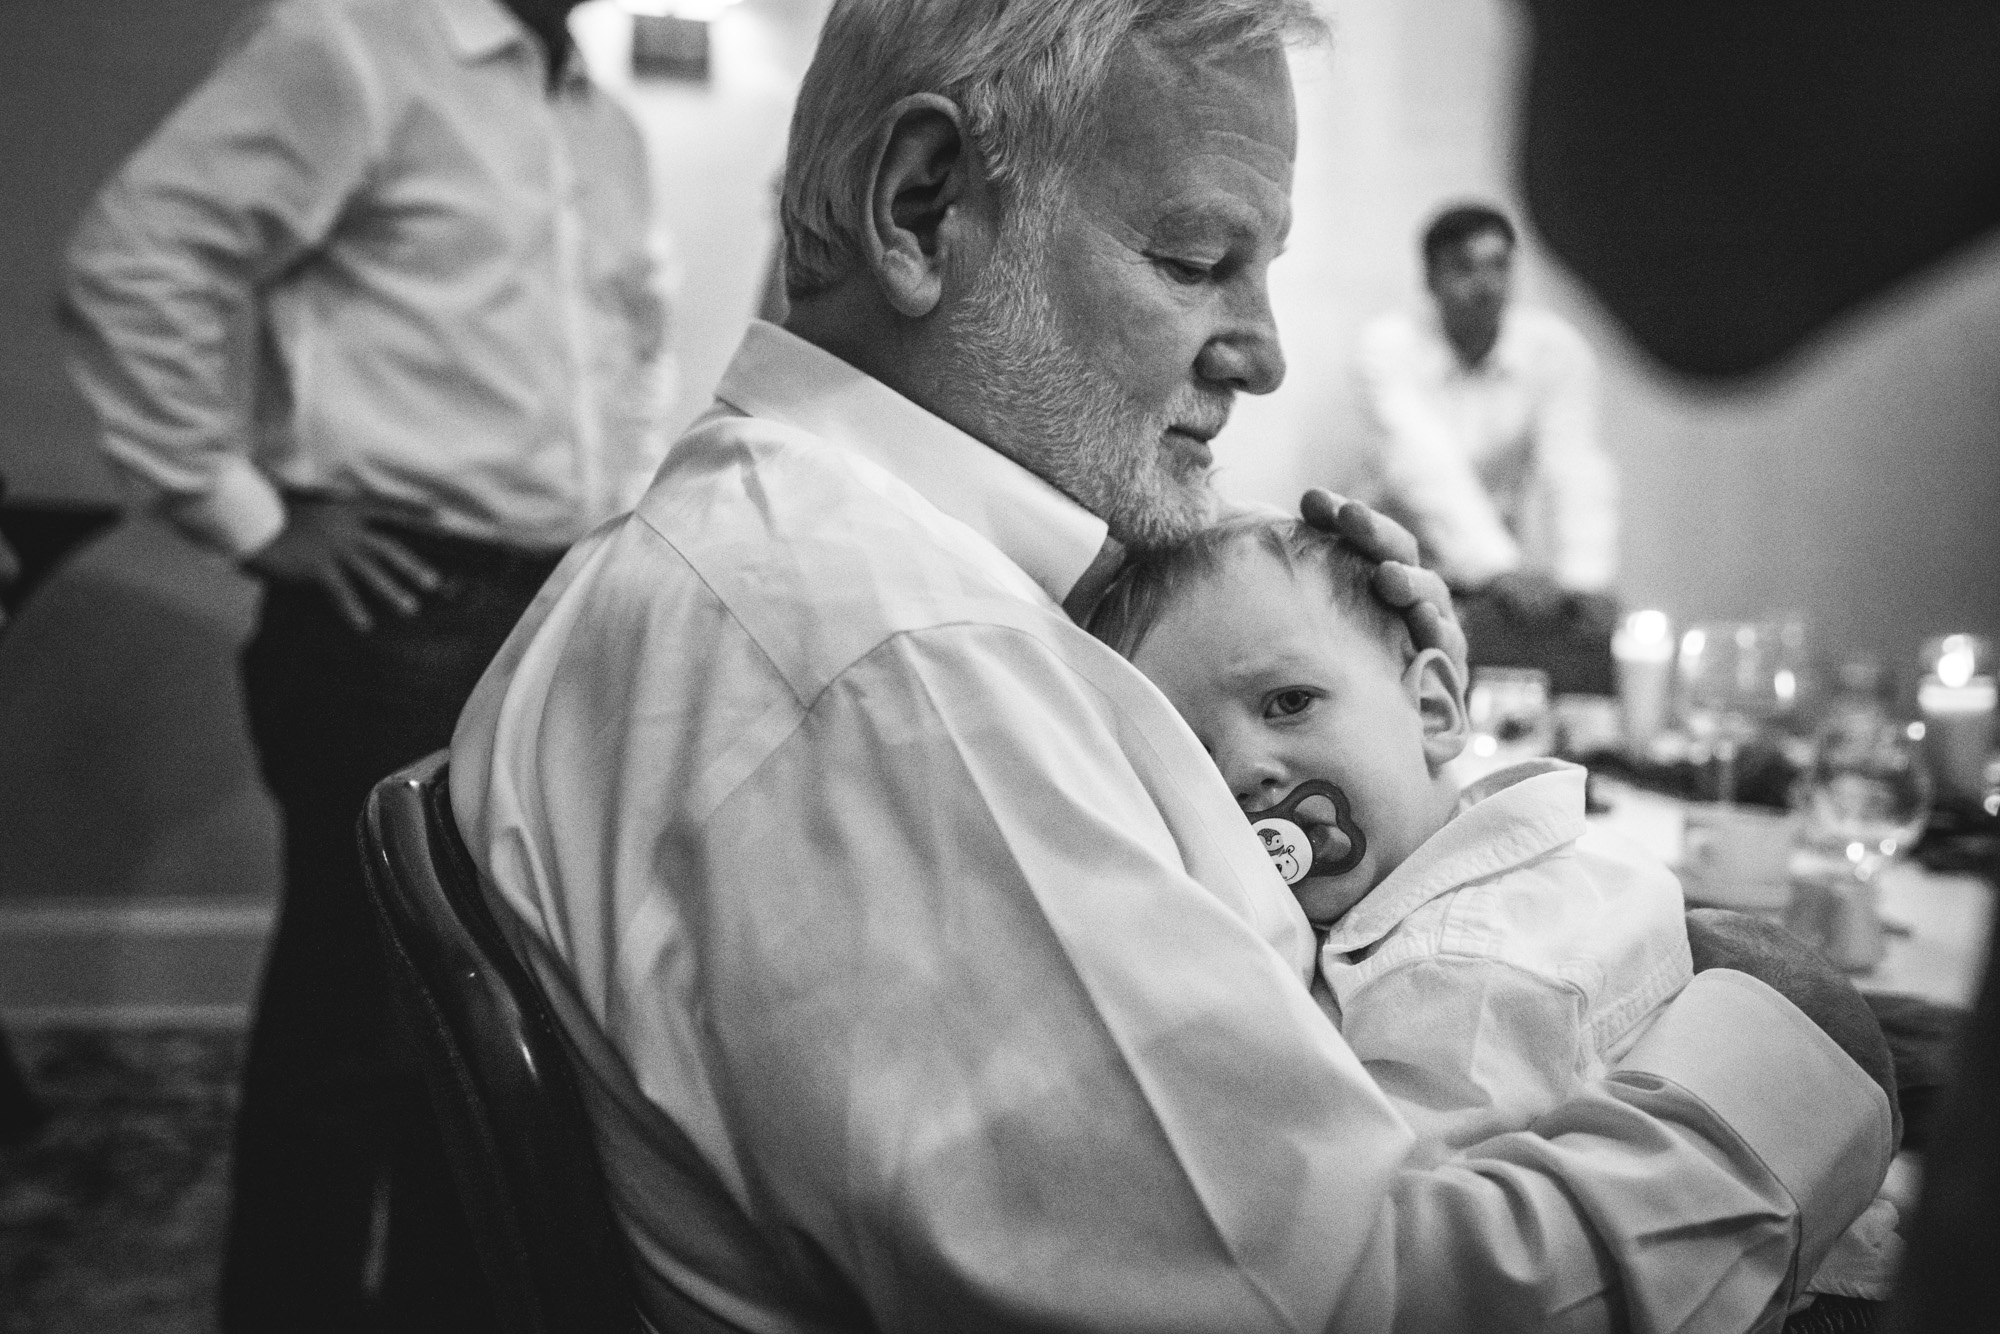 Black and white image of a grandpa and grandson at a wedding table, the little grandson lying his sweet head on his grandpa's chest as he pouts.